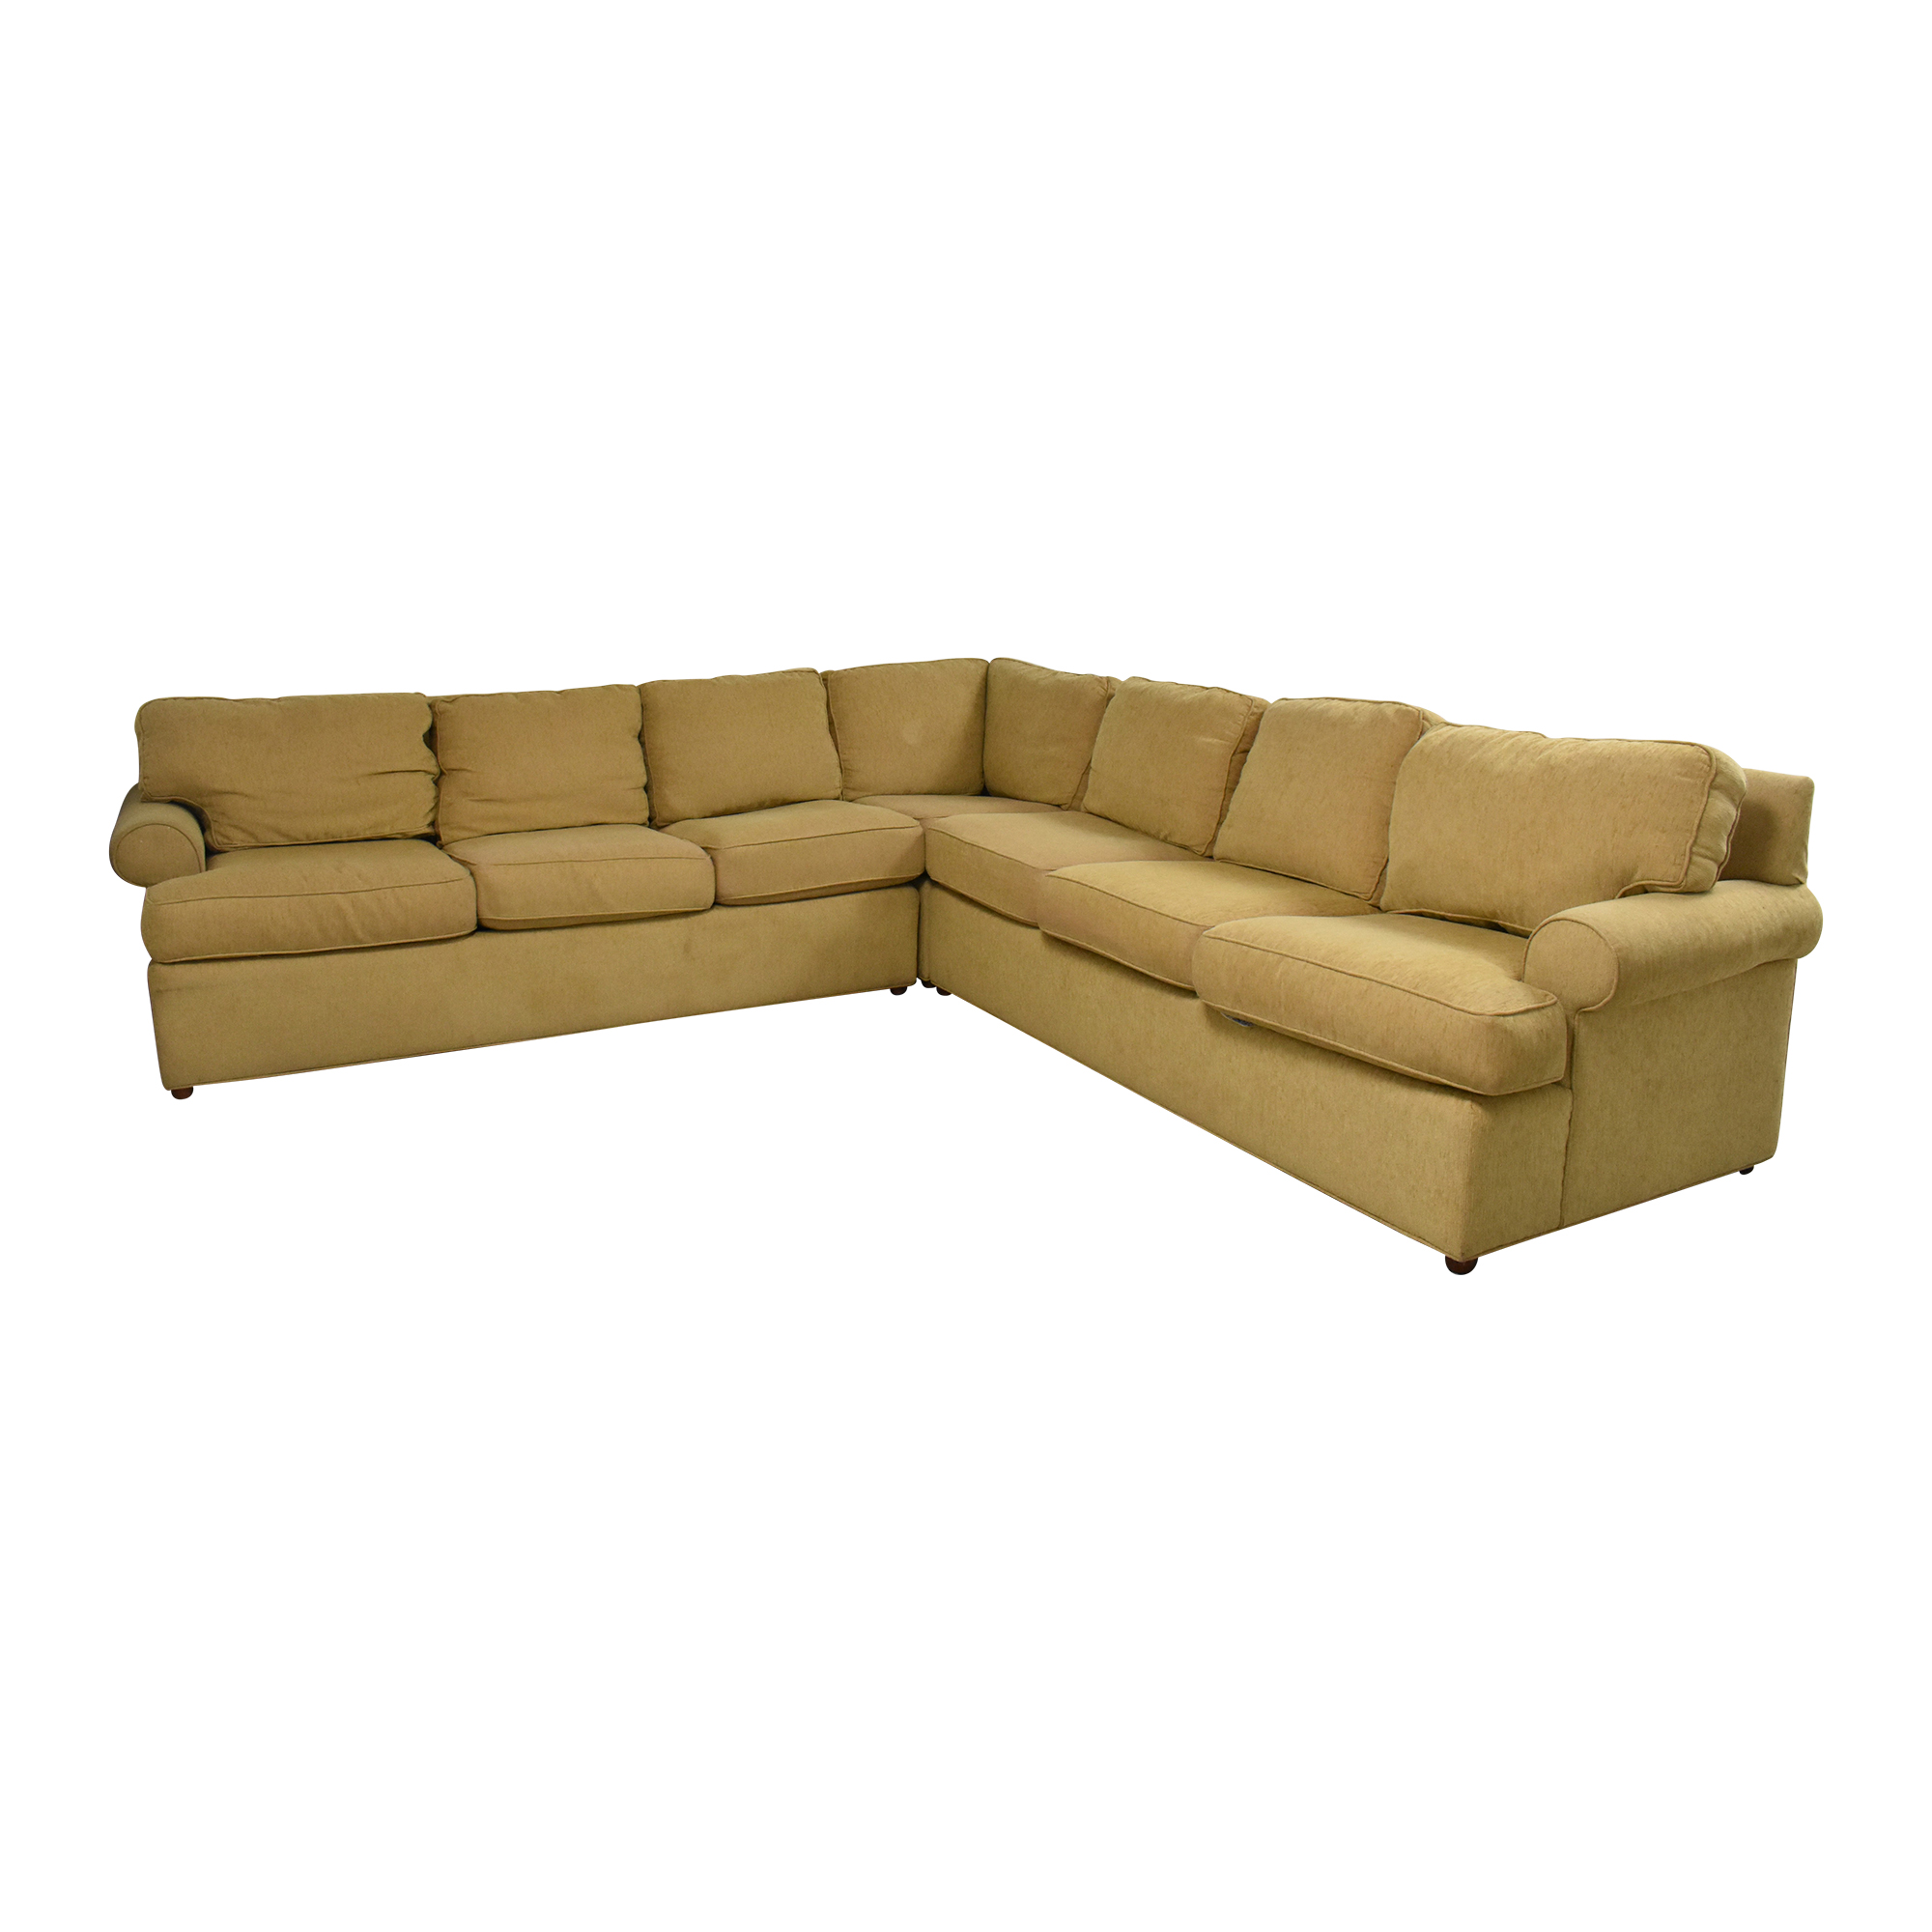 Ethan Allen Roll Arm Sectional Sofa sale